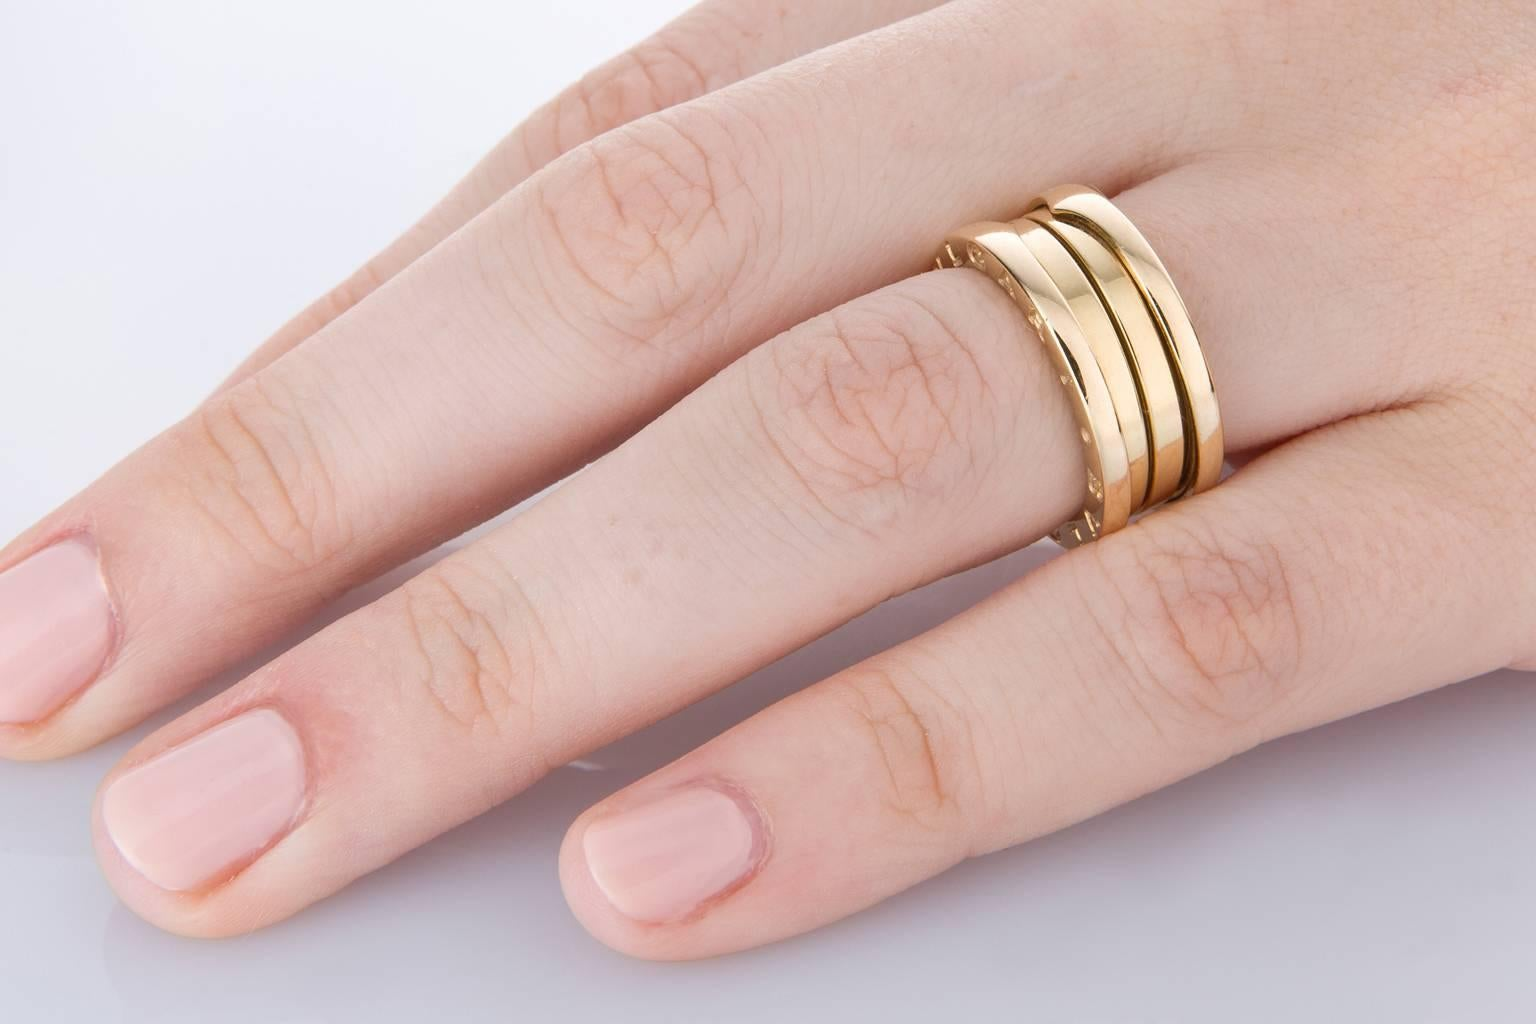 Bulgari B Zero Three-Band 18 Karat Yellow Gold Ring at 1stdibs